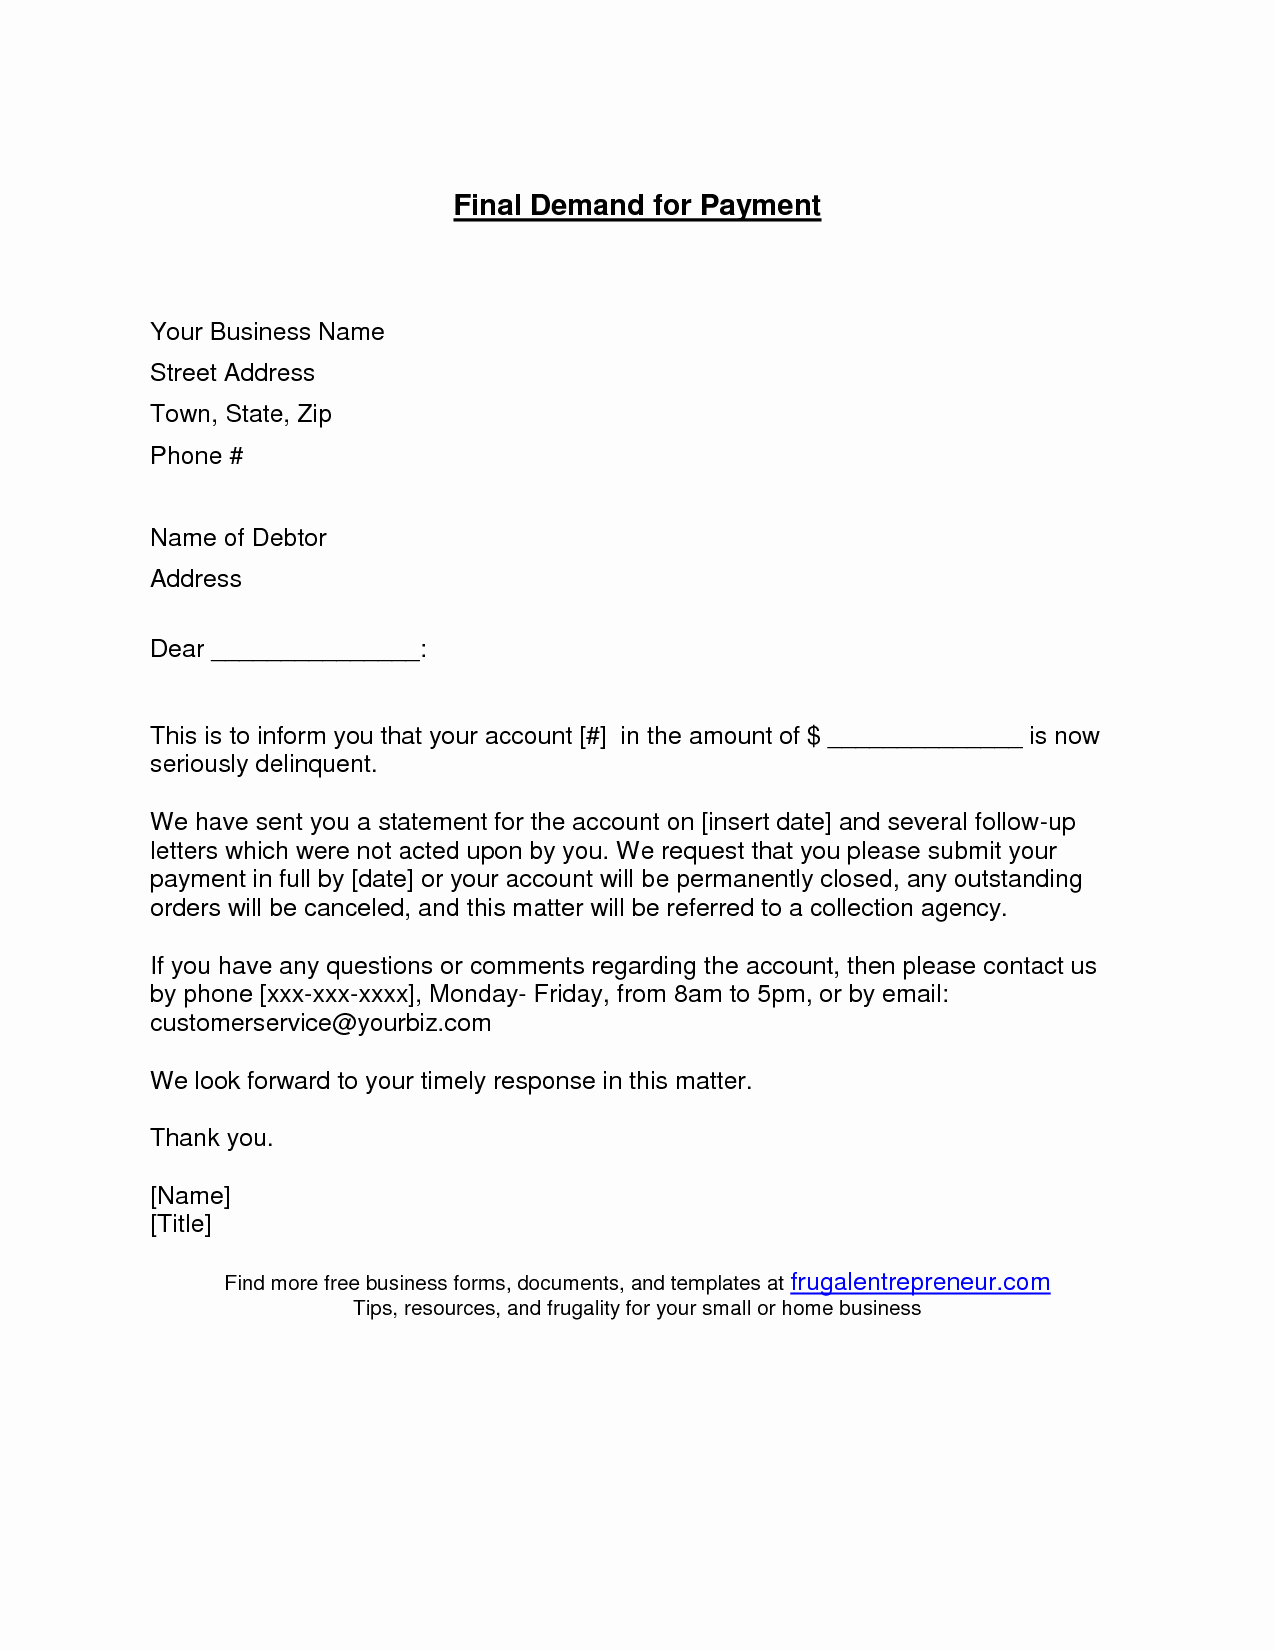 Final Demand Collection Letter Awesome Best S Of Outstanding Payment Letter Sample Overdue